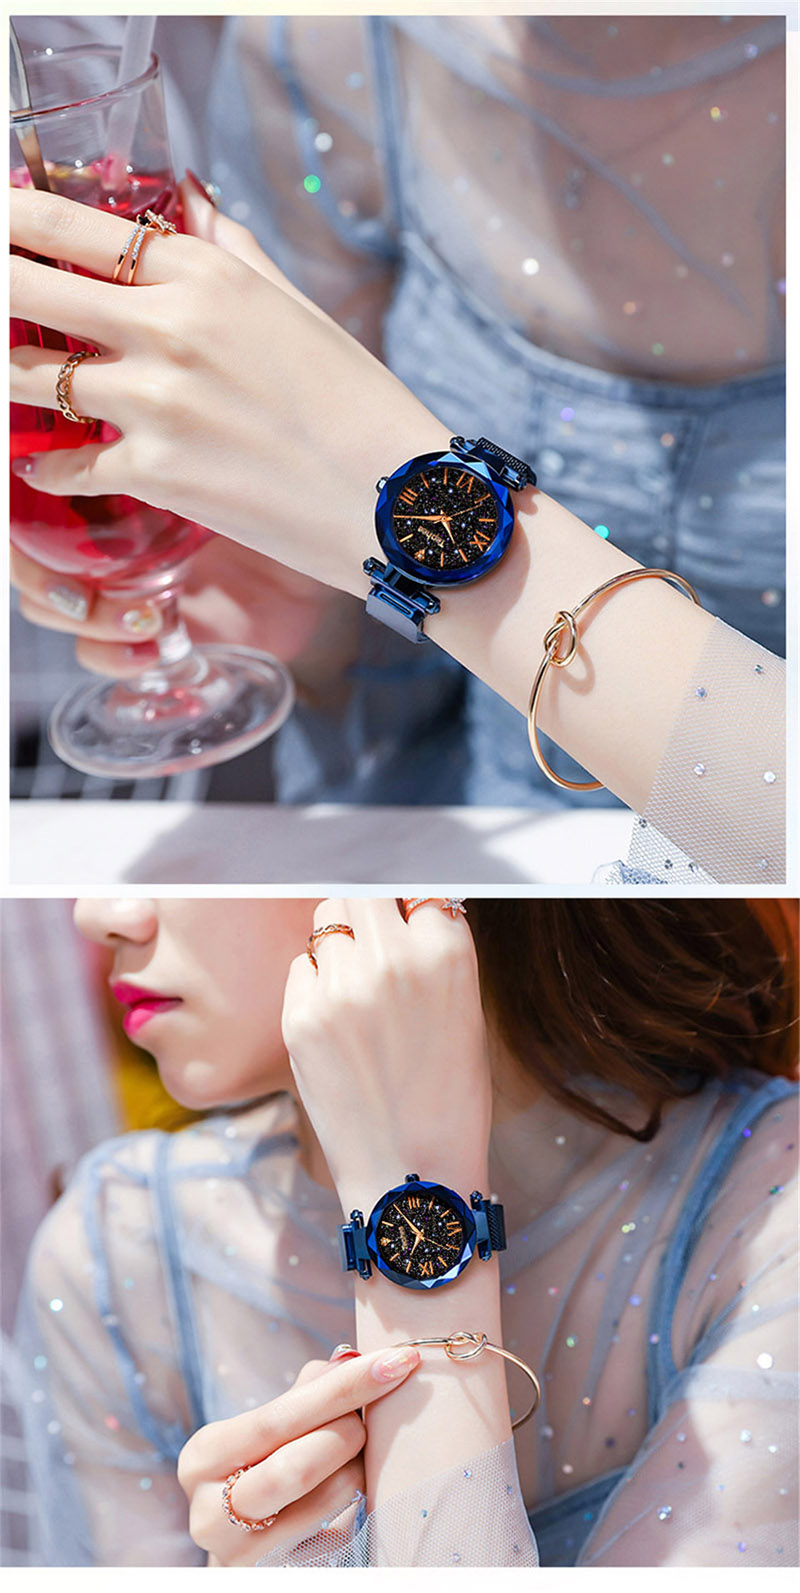 Luxury Women Watches Magnetic Starry Sky Female Clock Quartz Wristwatch Fashion Ladies Wrist Watch reloj mujer relogio feminino (15)